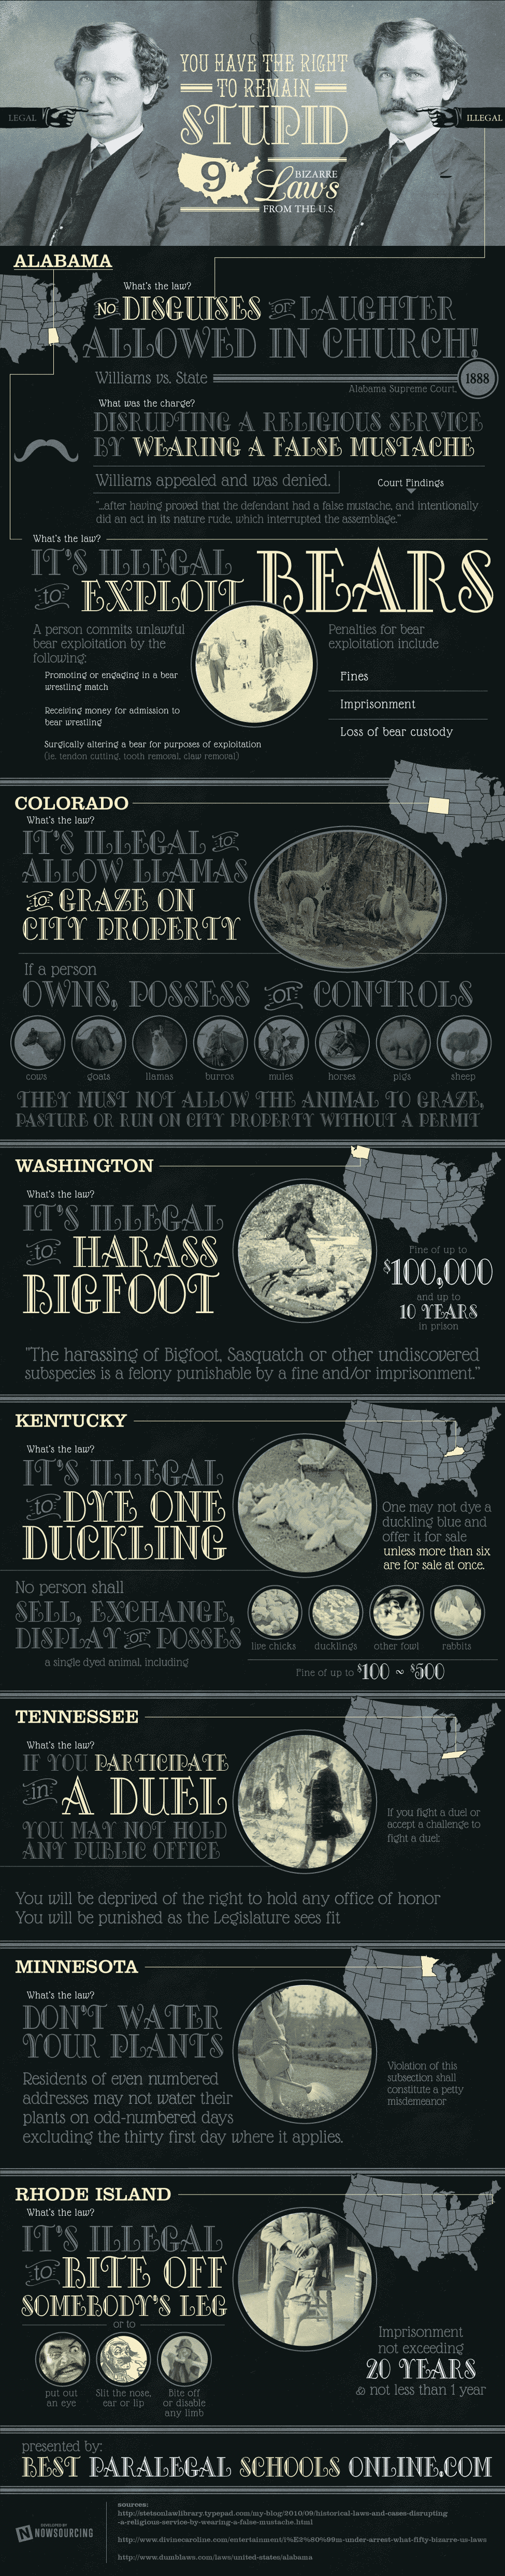 9 Bizarre Laws In American History [Infographic]